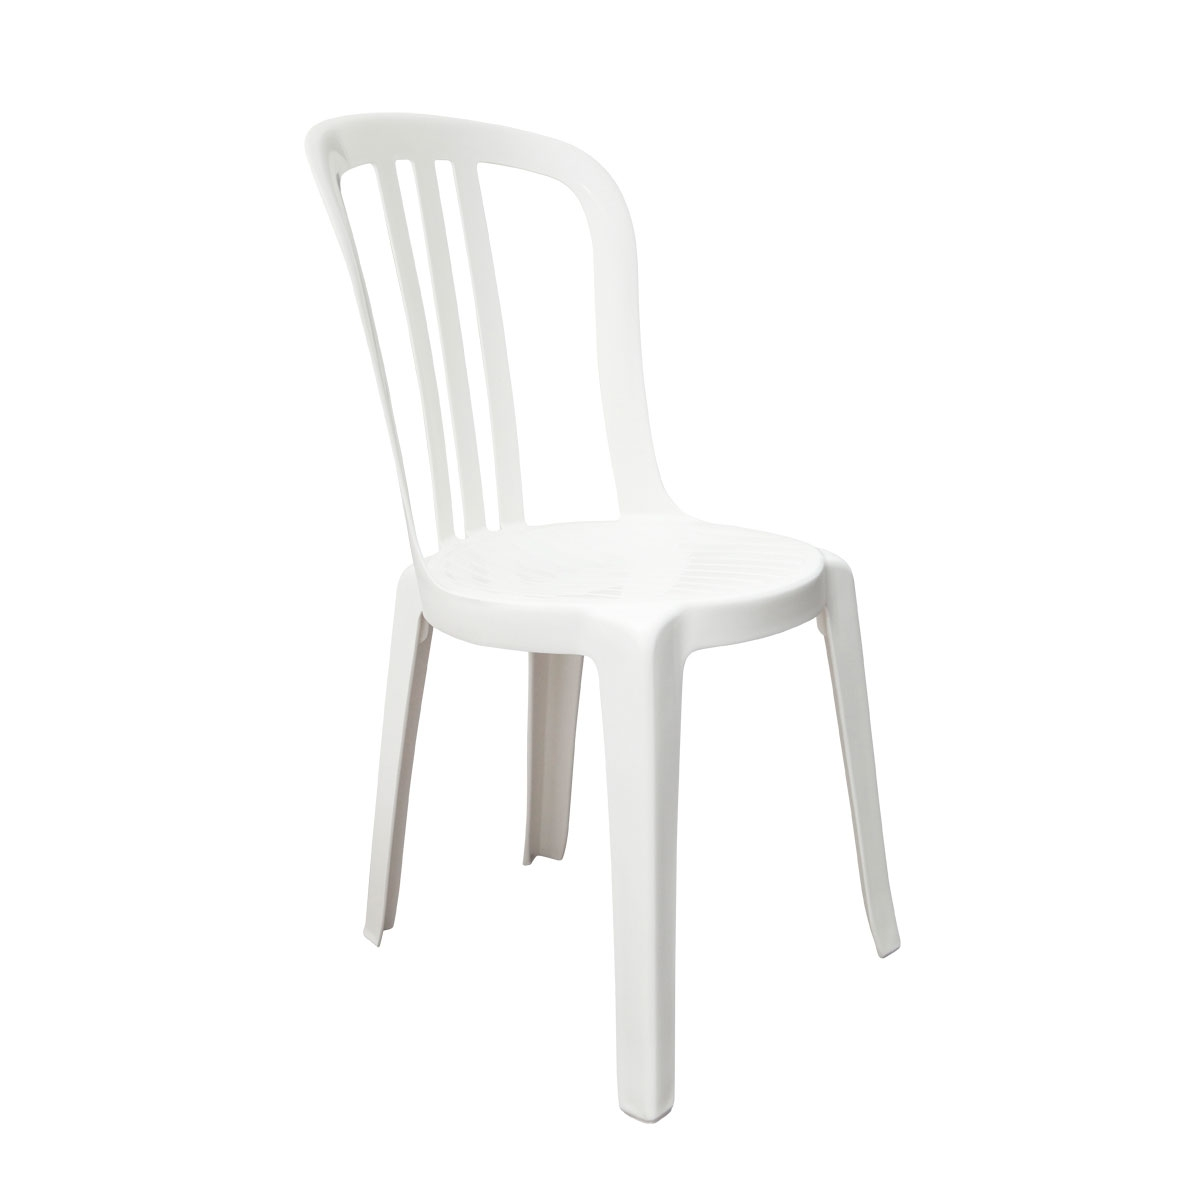 Chaise de jardin monobloc design grosfillex bistrot for Chaise jardin